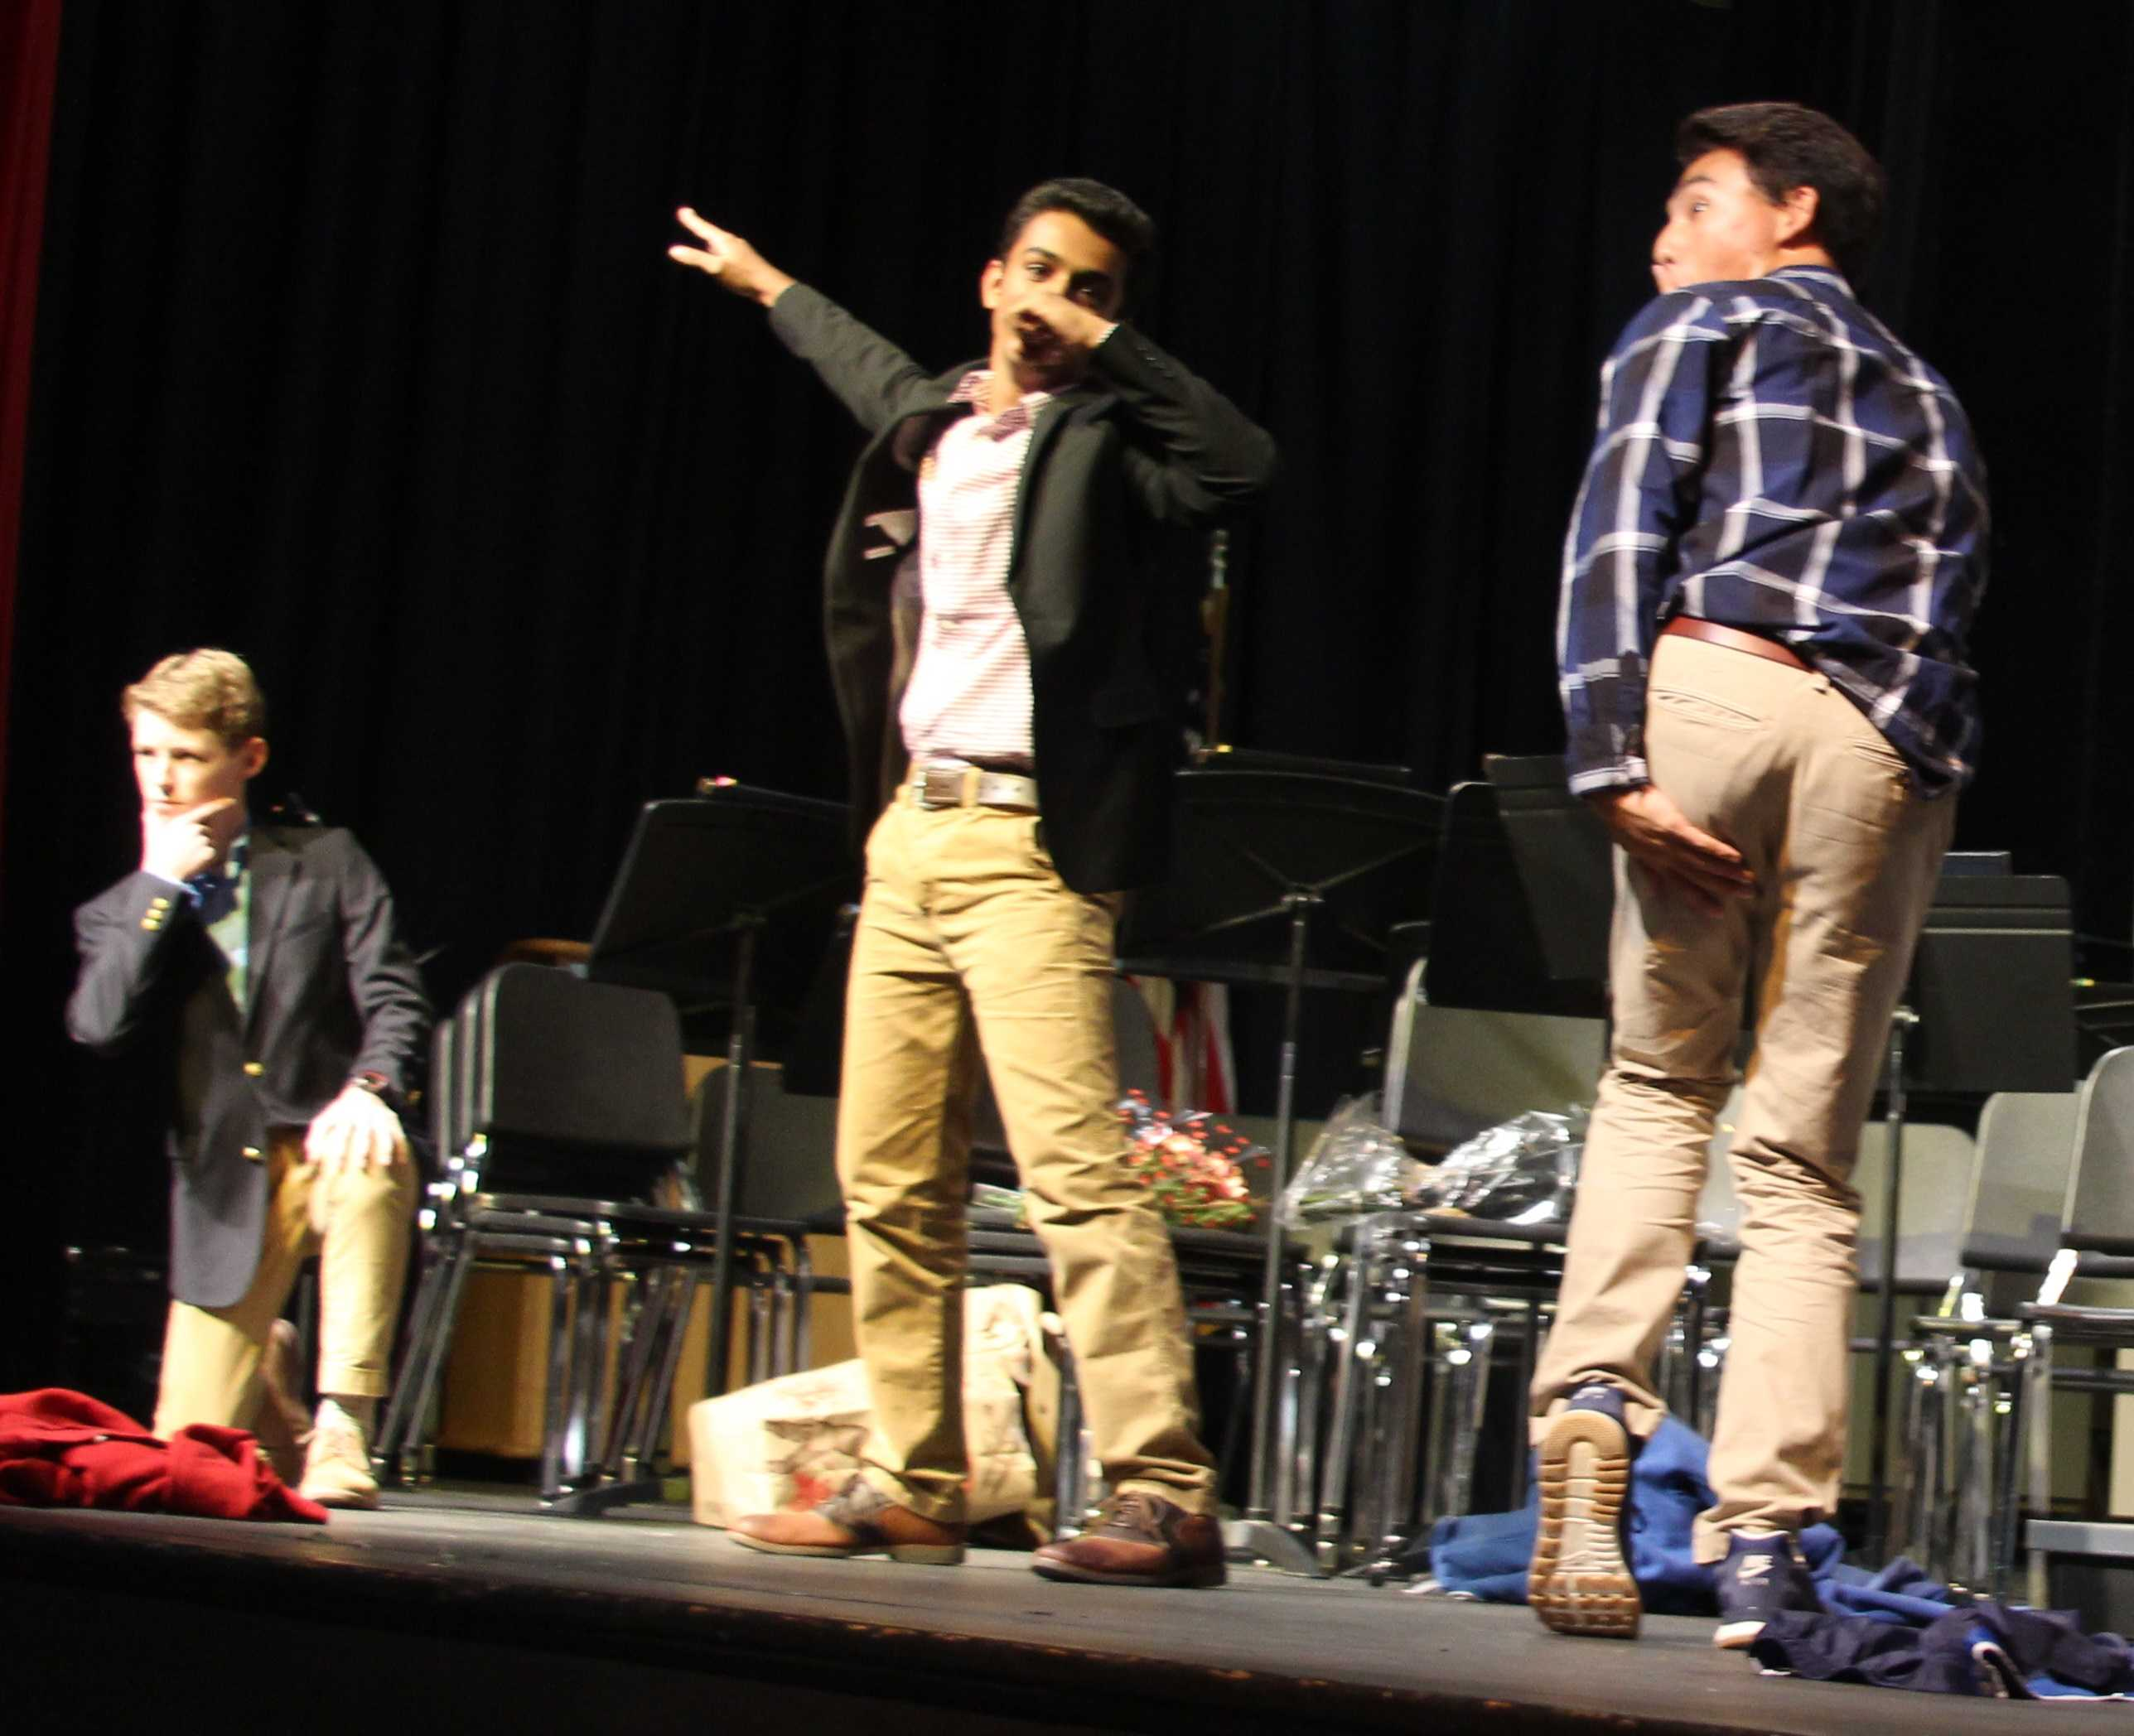 Juniors CJ Wilson, Sishaar Rao, Nick Yoon, and Jack Schefer (not pictured) ask four girls to homecoming in the auditorium during break Wednesday afternoon.